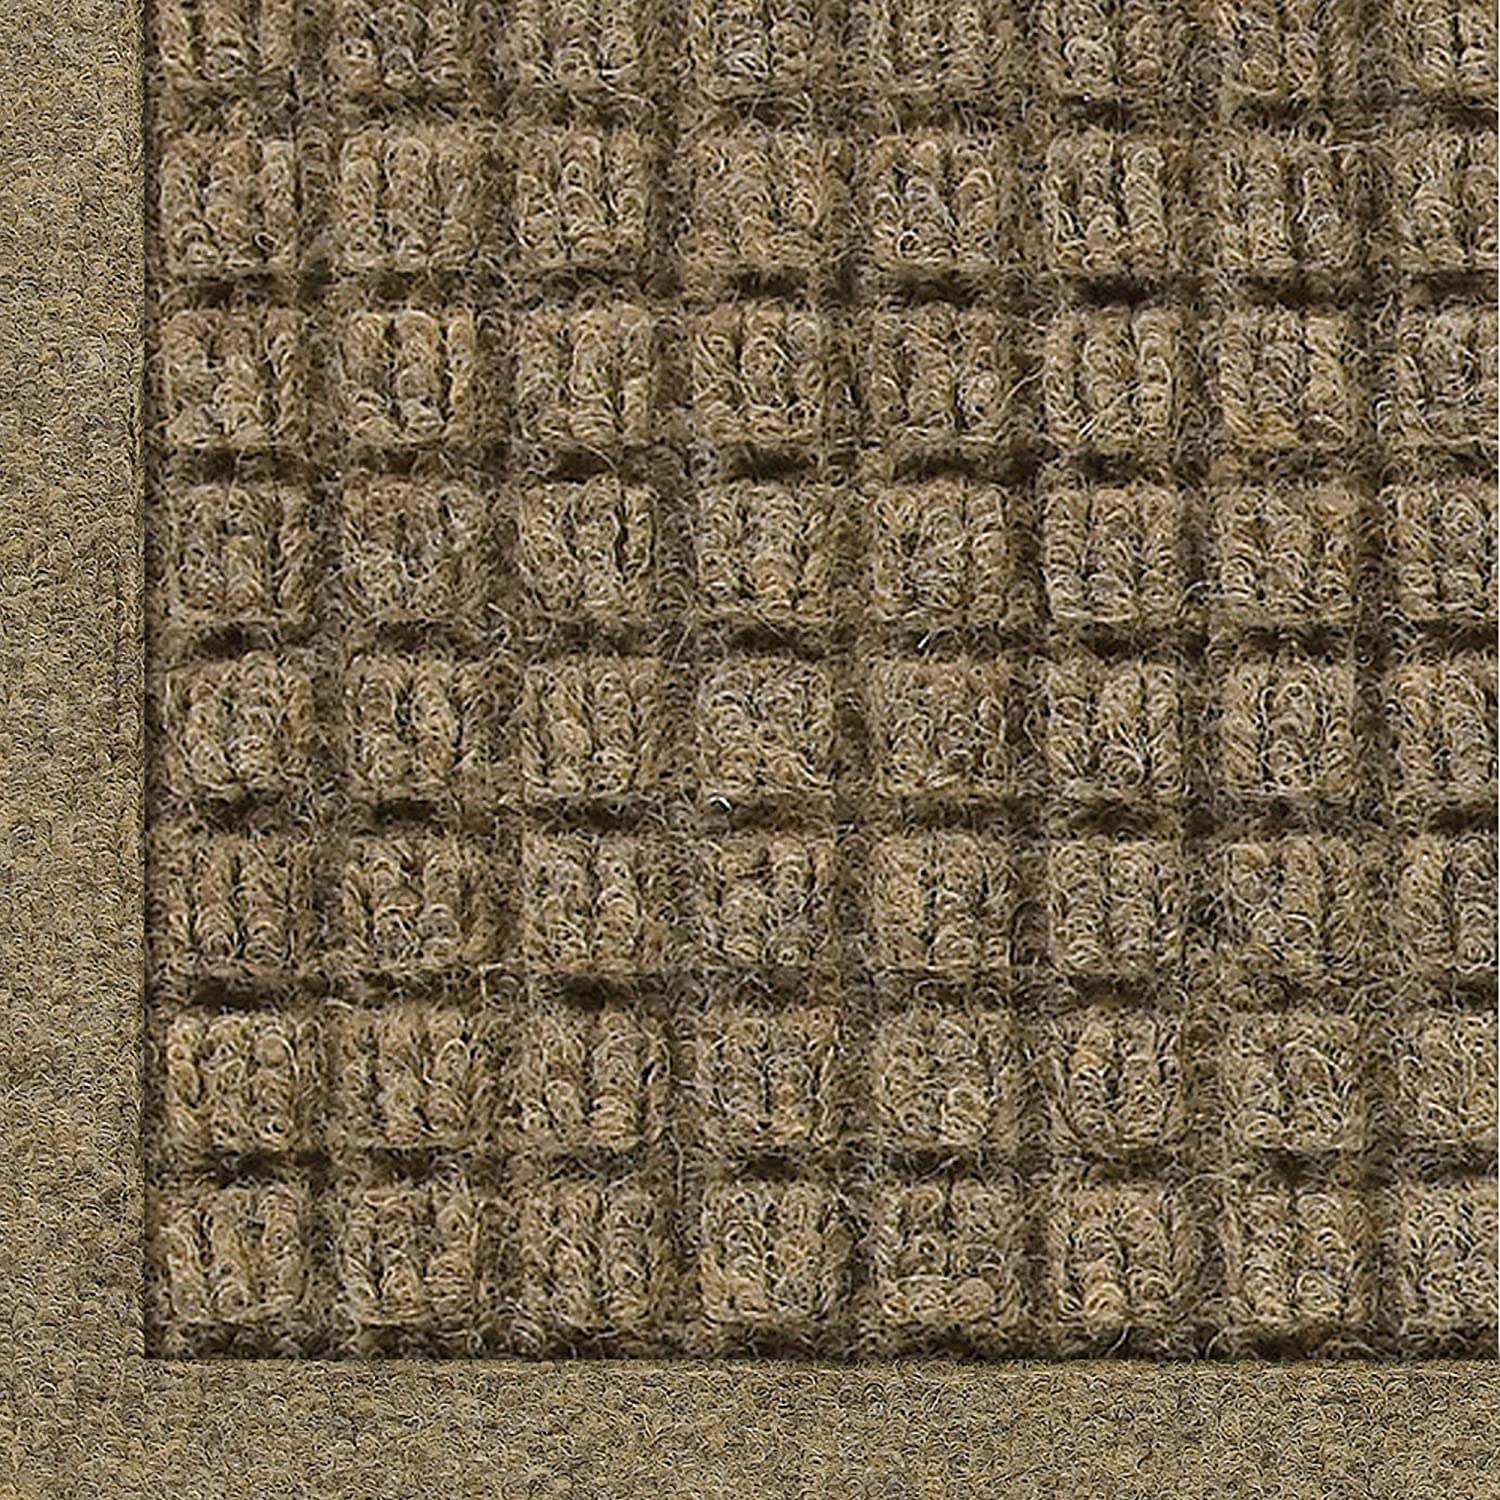 WaterHog Fashion Mat | Commercial-Grade Entrance Mat with Fabric Border – Indoor/Outdoor, Quick Drying, Stain Resistant Door Mat (Camel, 4' x 6')